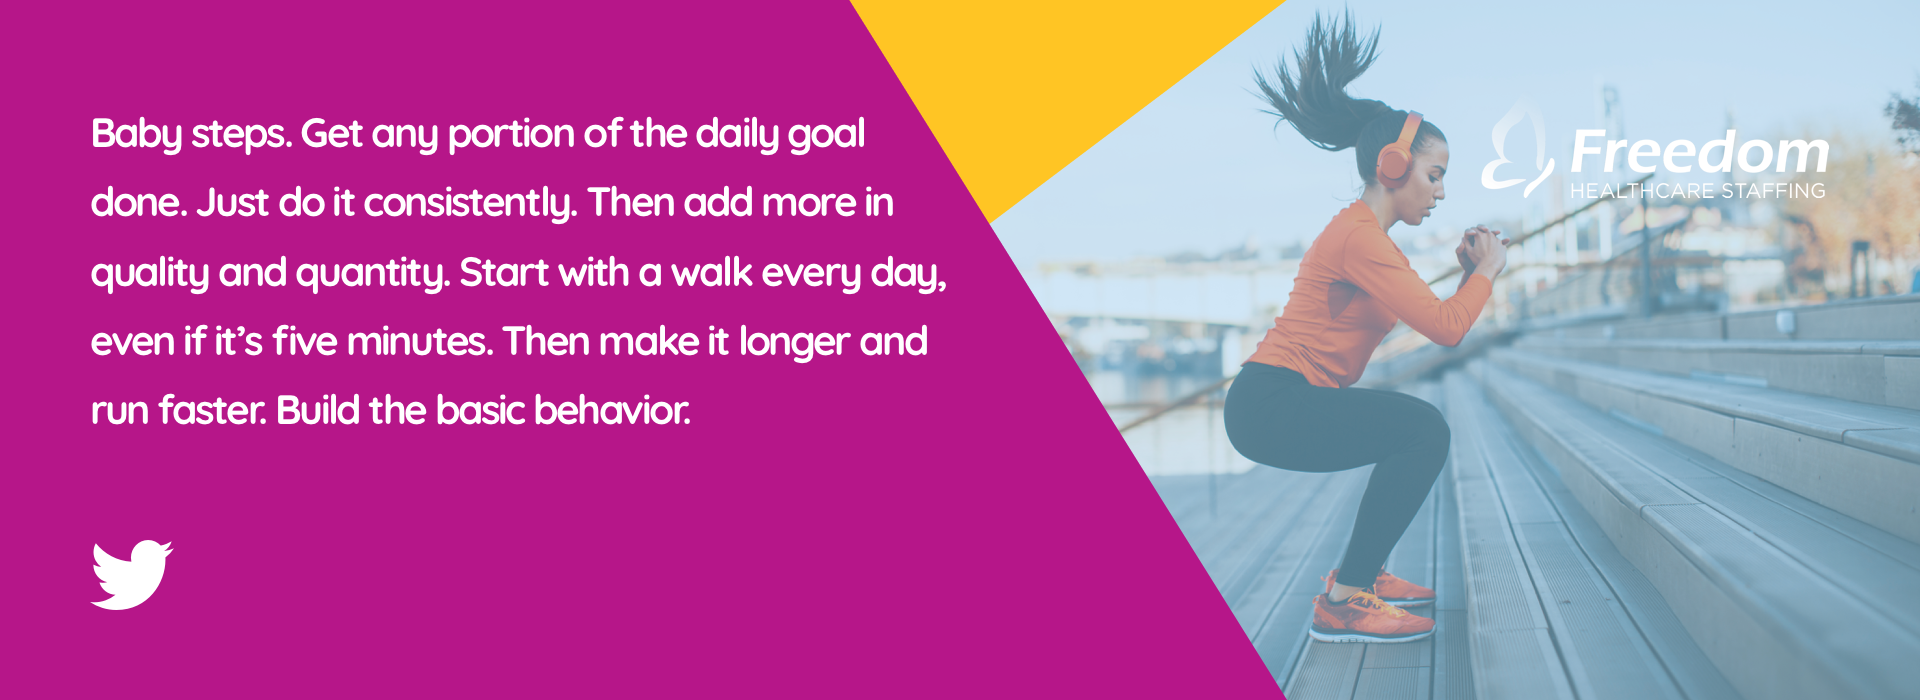 Baby steps. Get any portion of the daily goal done. Just do it consistently. Then add more in quality and quantity. Start with a walk every day, even if it's five minutes. Then make it longer and run faster. Build the basic behavior.